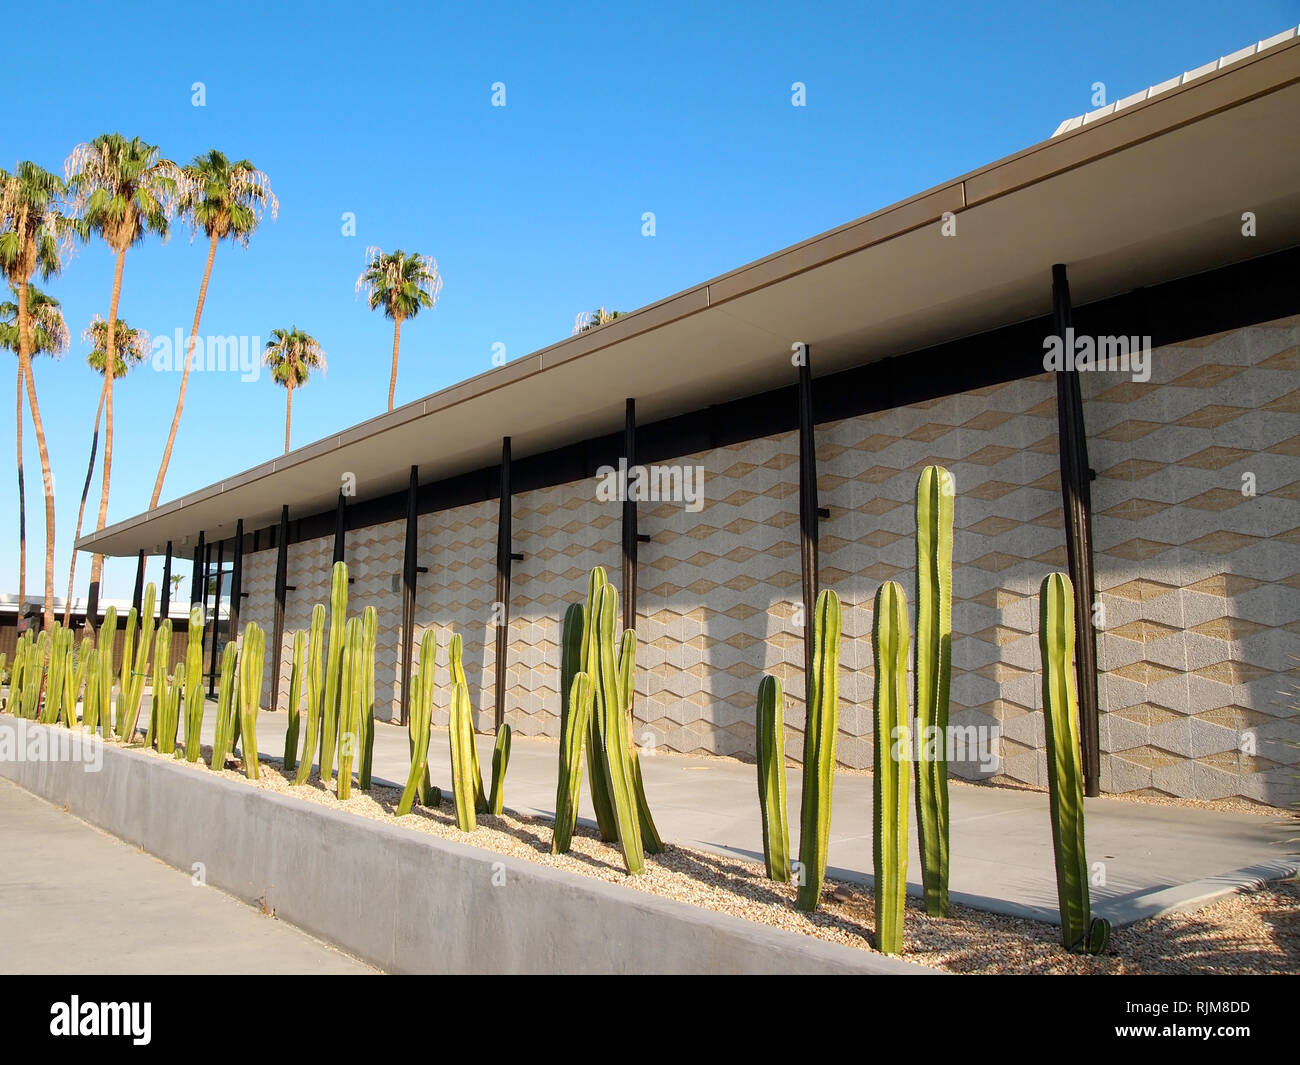 The exterior of a building completed in 1958 and recently renovated and preserved in Palm Springs, California, featuring details of modernist architec - Stock Image